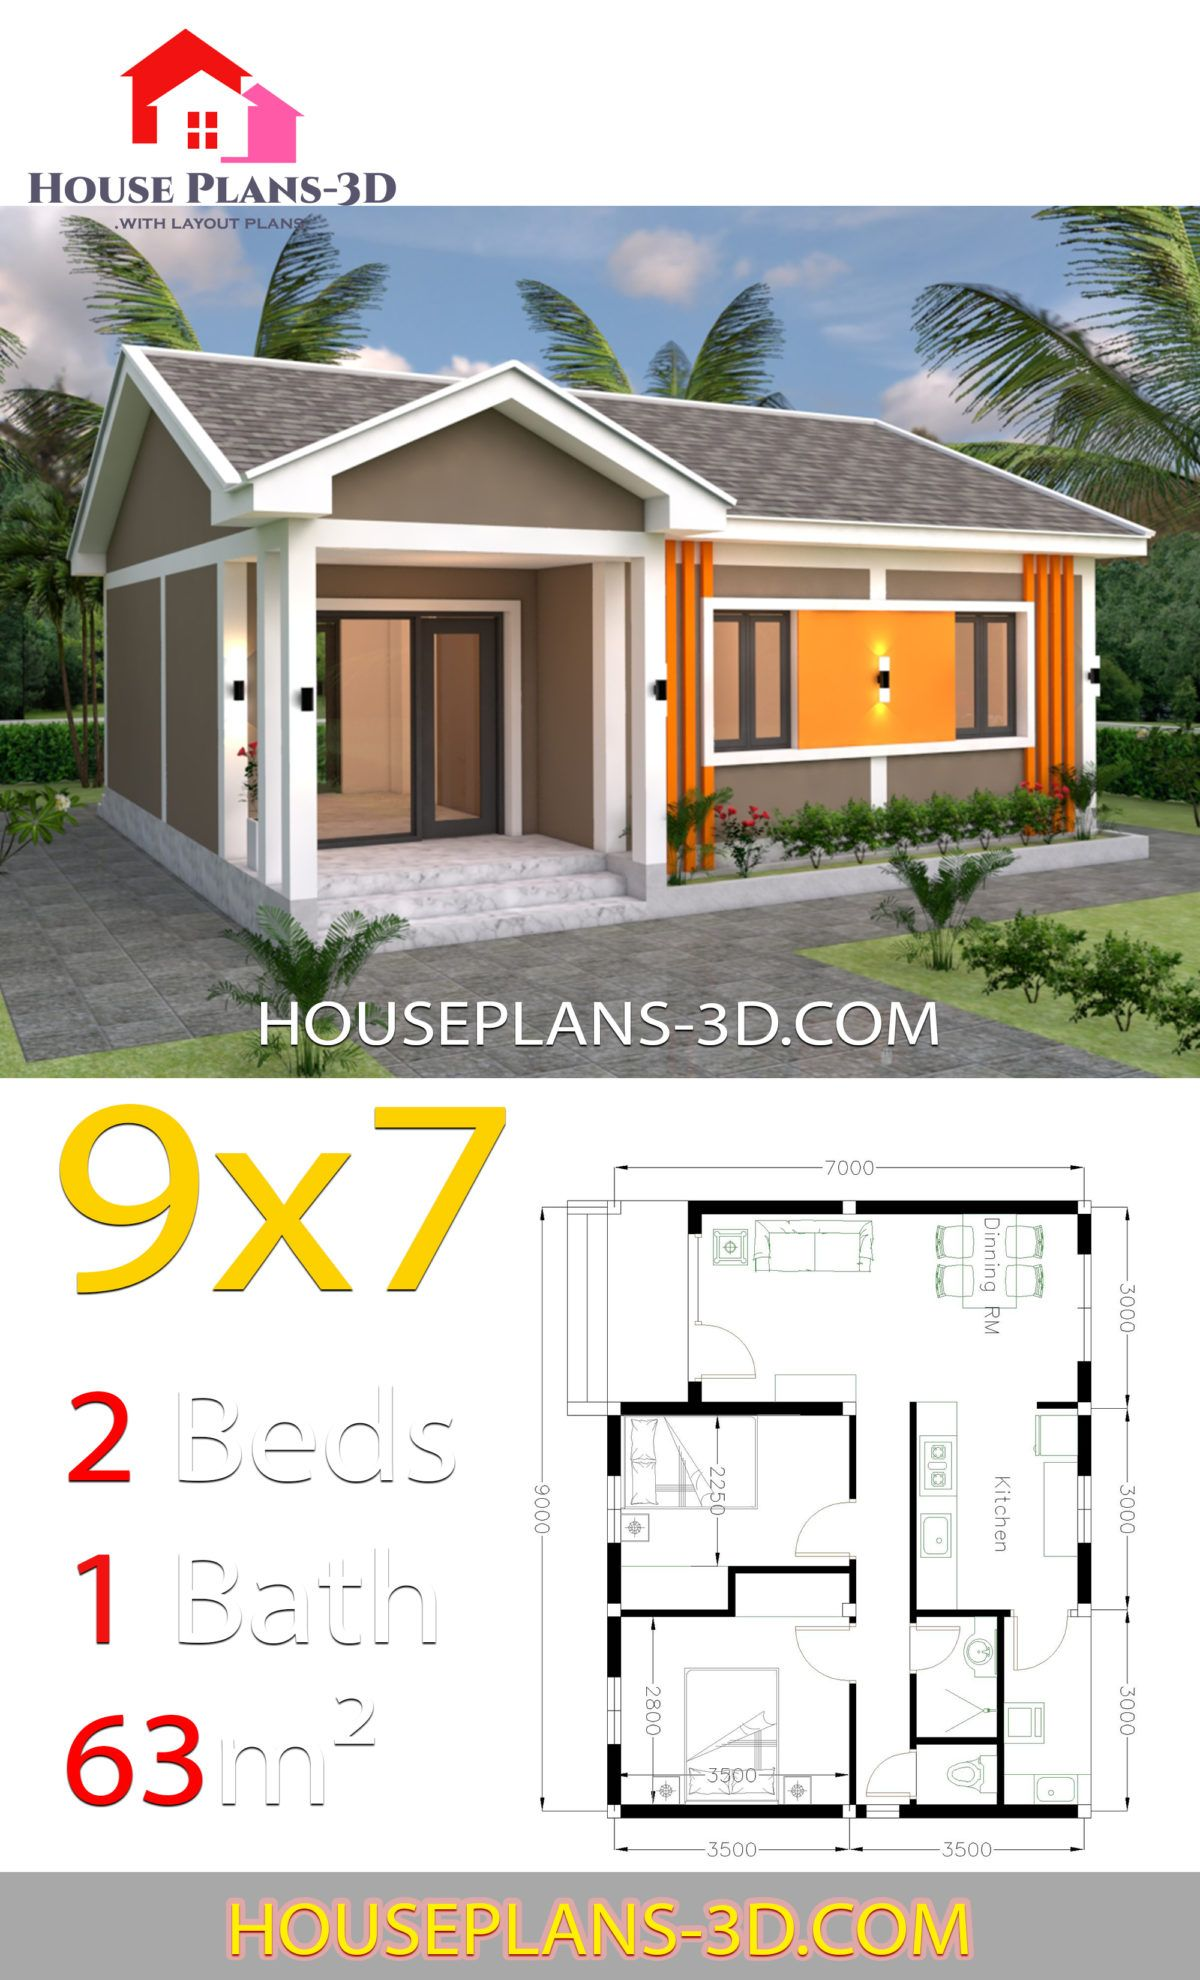 House Plans 9x7 With 2 Bedrooms Gable Roof House Plans 3d House Construction Plan House Plan Gallery House Plans